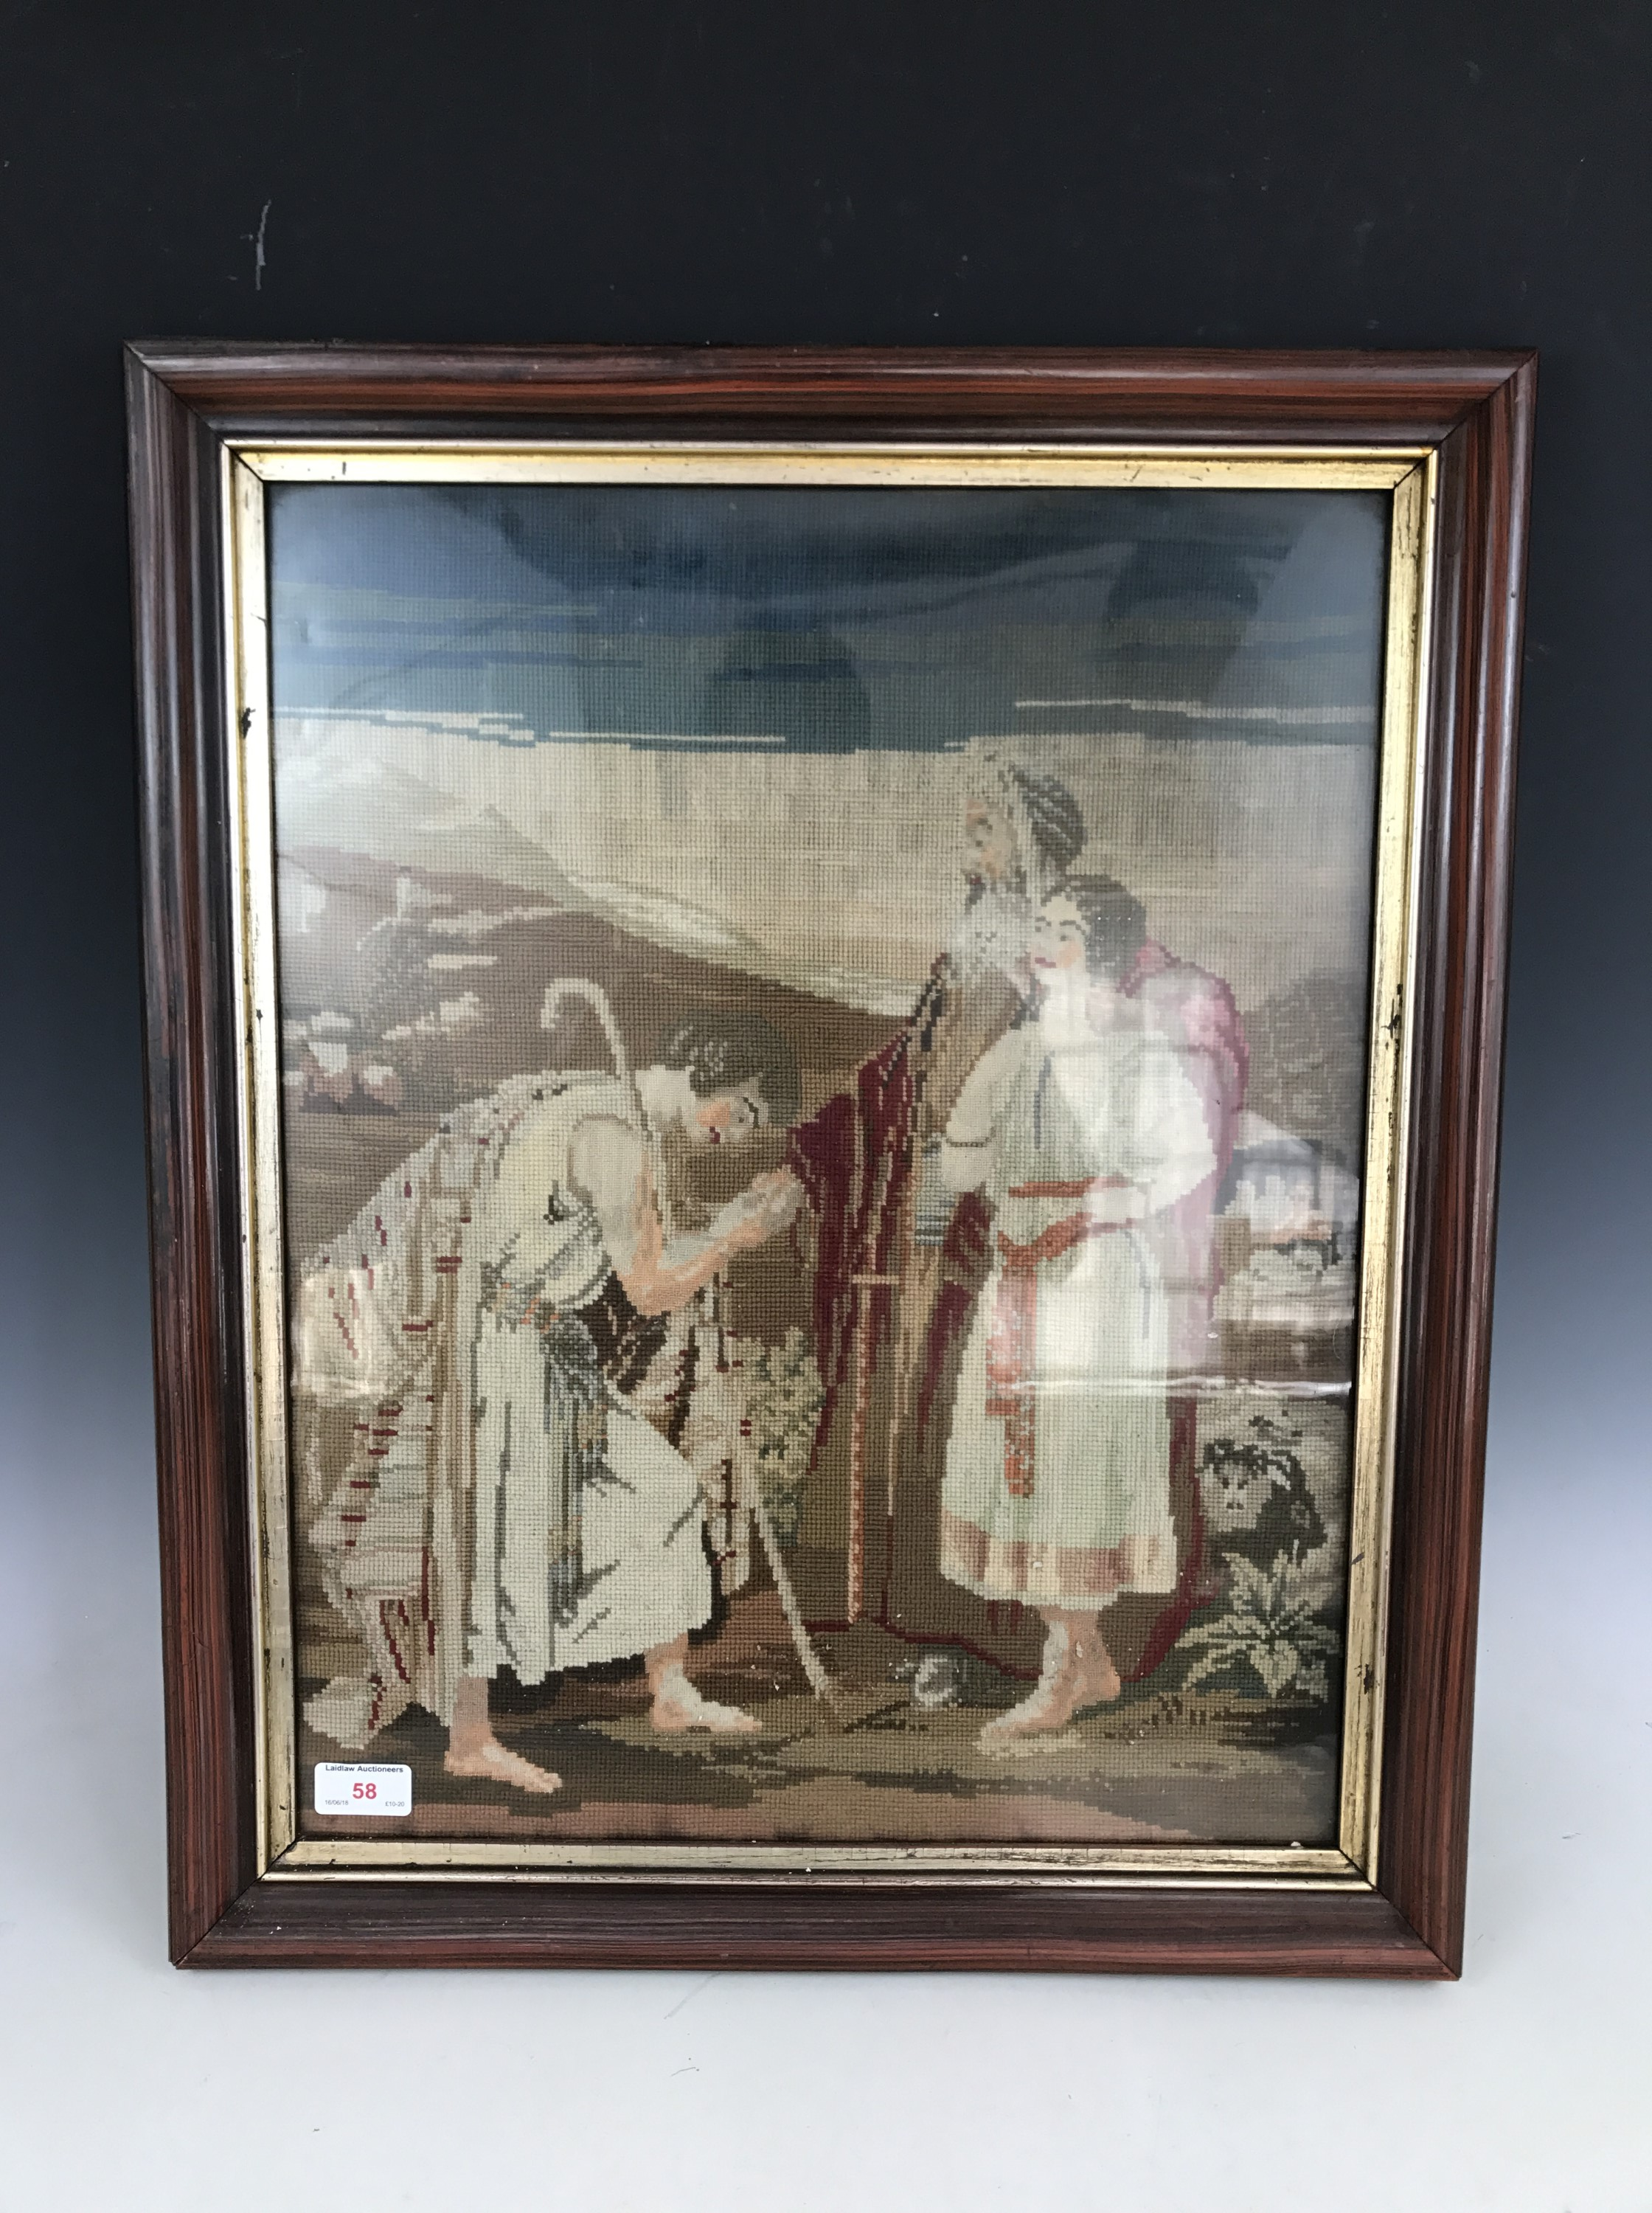 Lot 58 - A Victorian gros-and petit-point needlework tapestry of a biblical scene framed under glass, 54 x 41